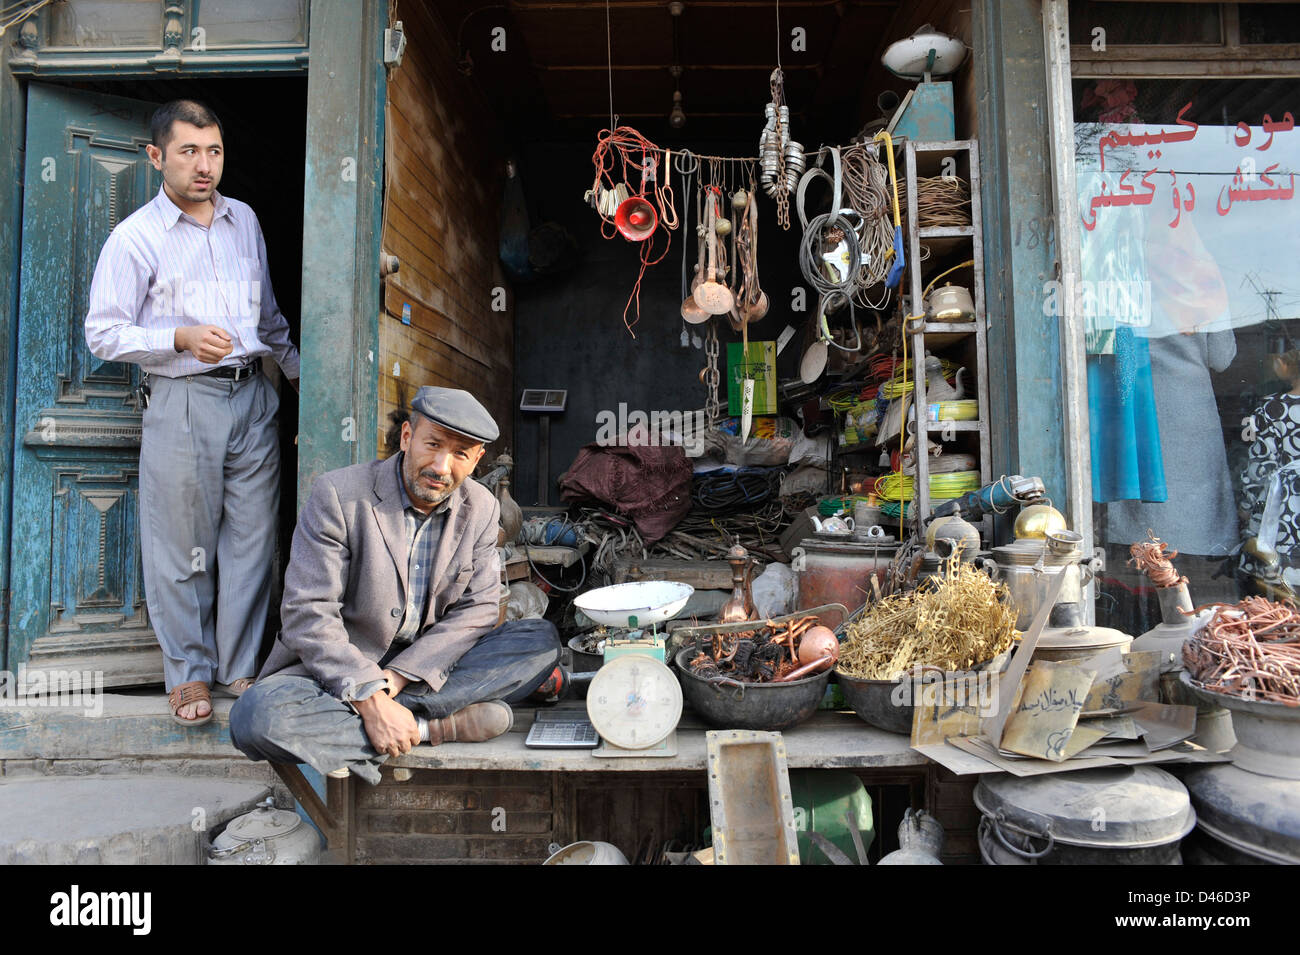 junk shop,or shop for whatever in the old city of kashgar - Stock Image